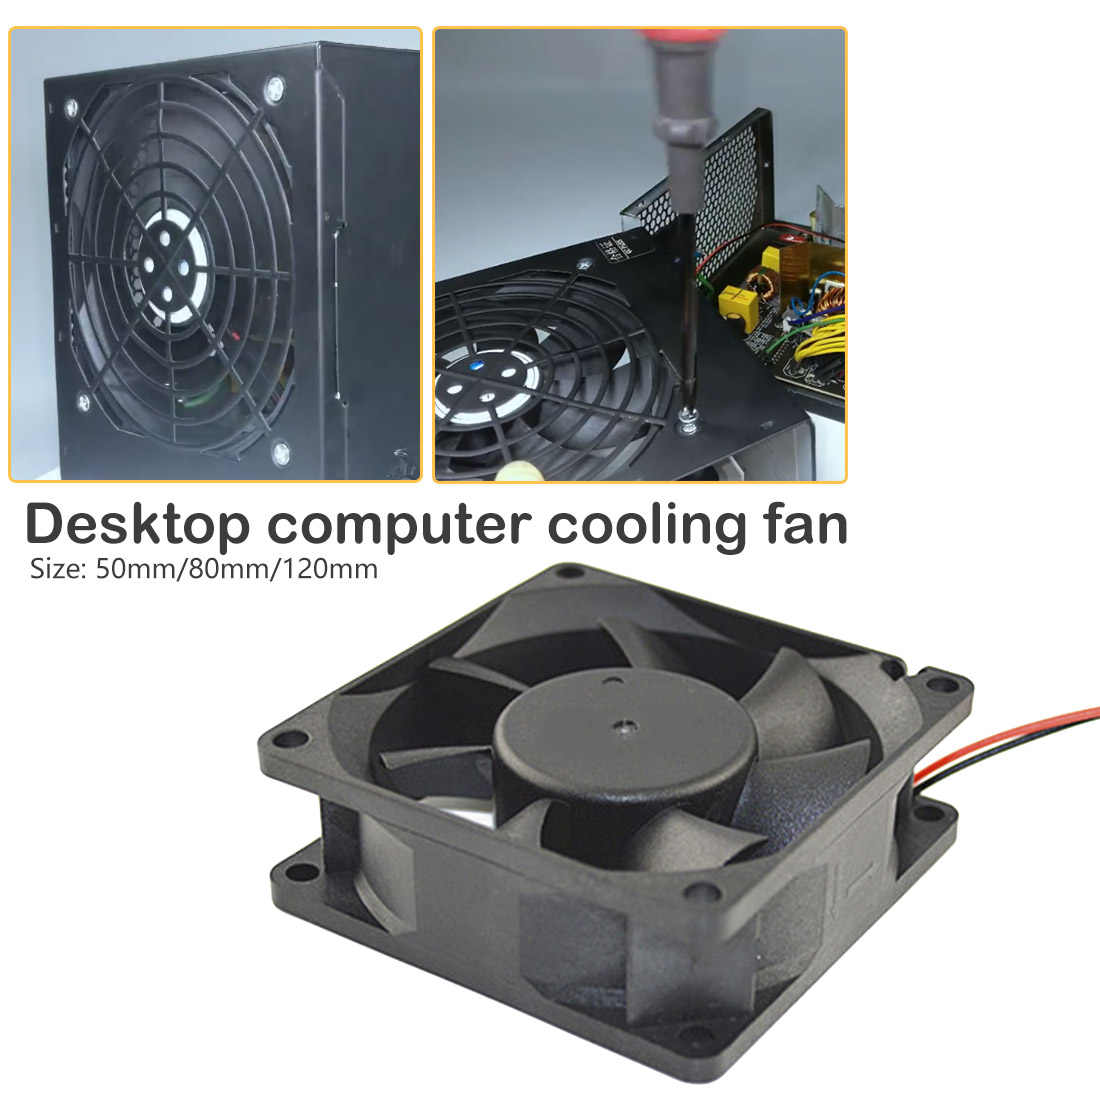 New 50 80 <font><b>120</b></font> <font><b>mm</b></font> 2 Pin Connector Cooling <font><b>Fan</b></font> for Computer Case CPU Cooler Radiator Computer Accessories <font><b>12V</b></font> DC CPU Cooling <font><b>Fans</b></font> image